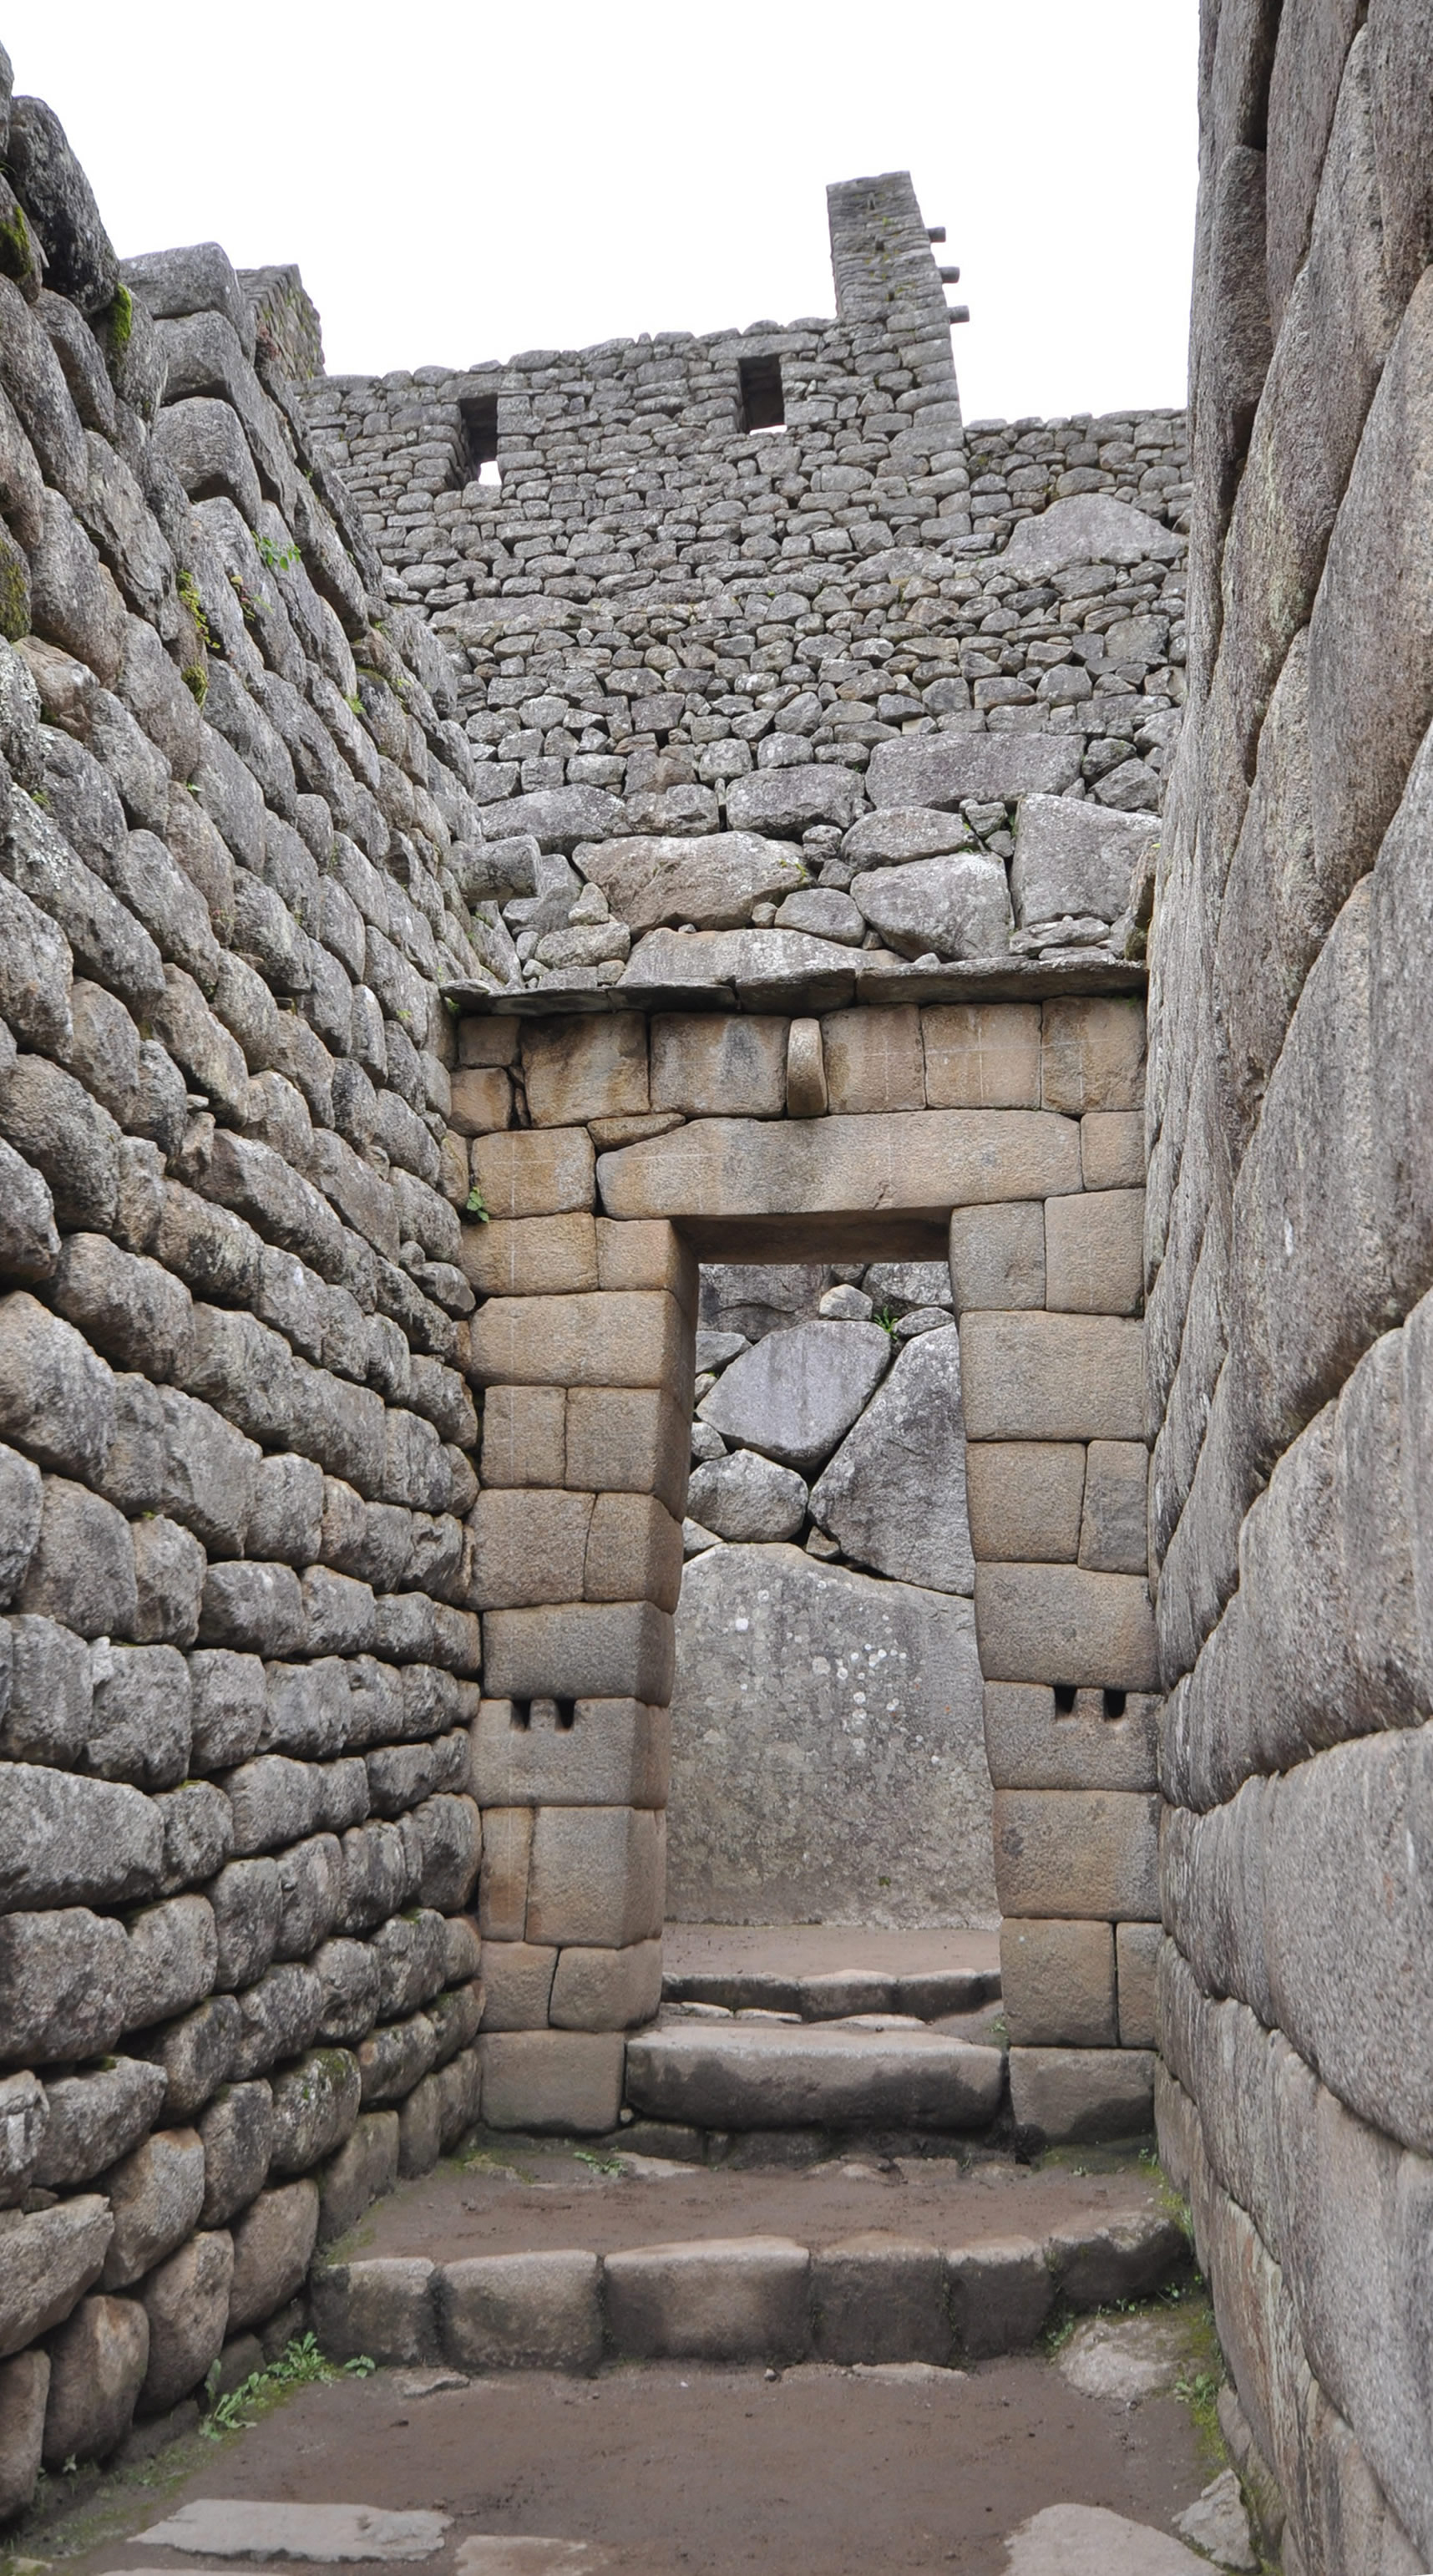 File:Lascar Inca architecture - The use of dry-stone walls ...Inca Buildings And Structures